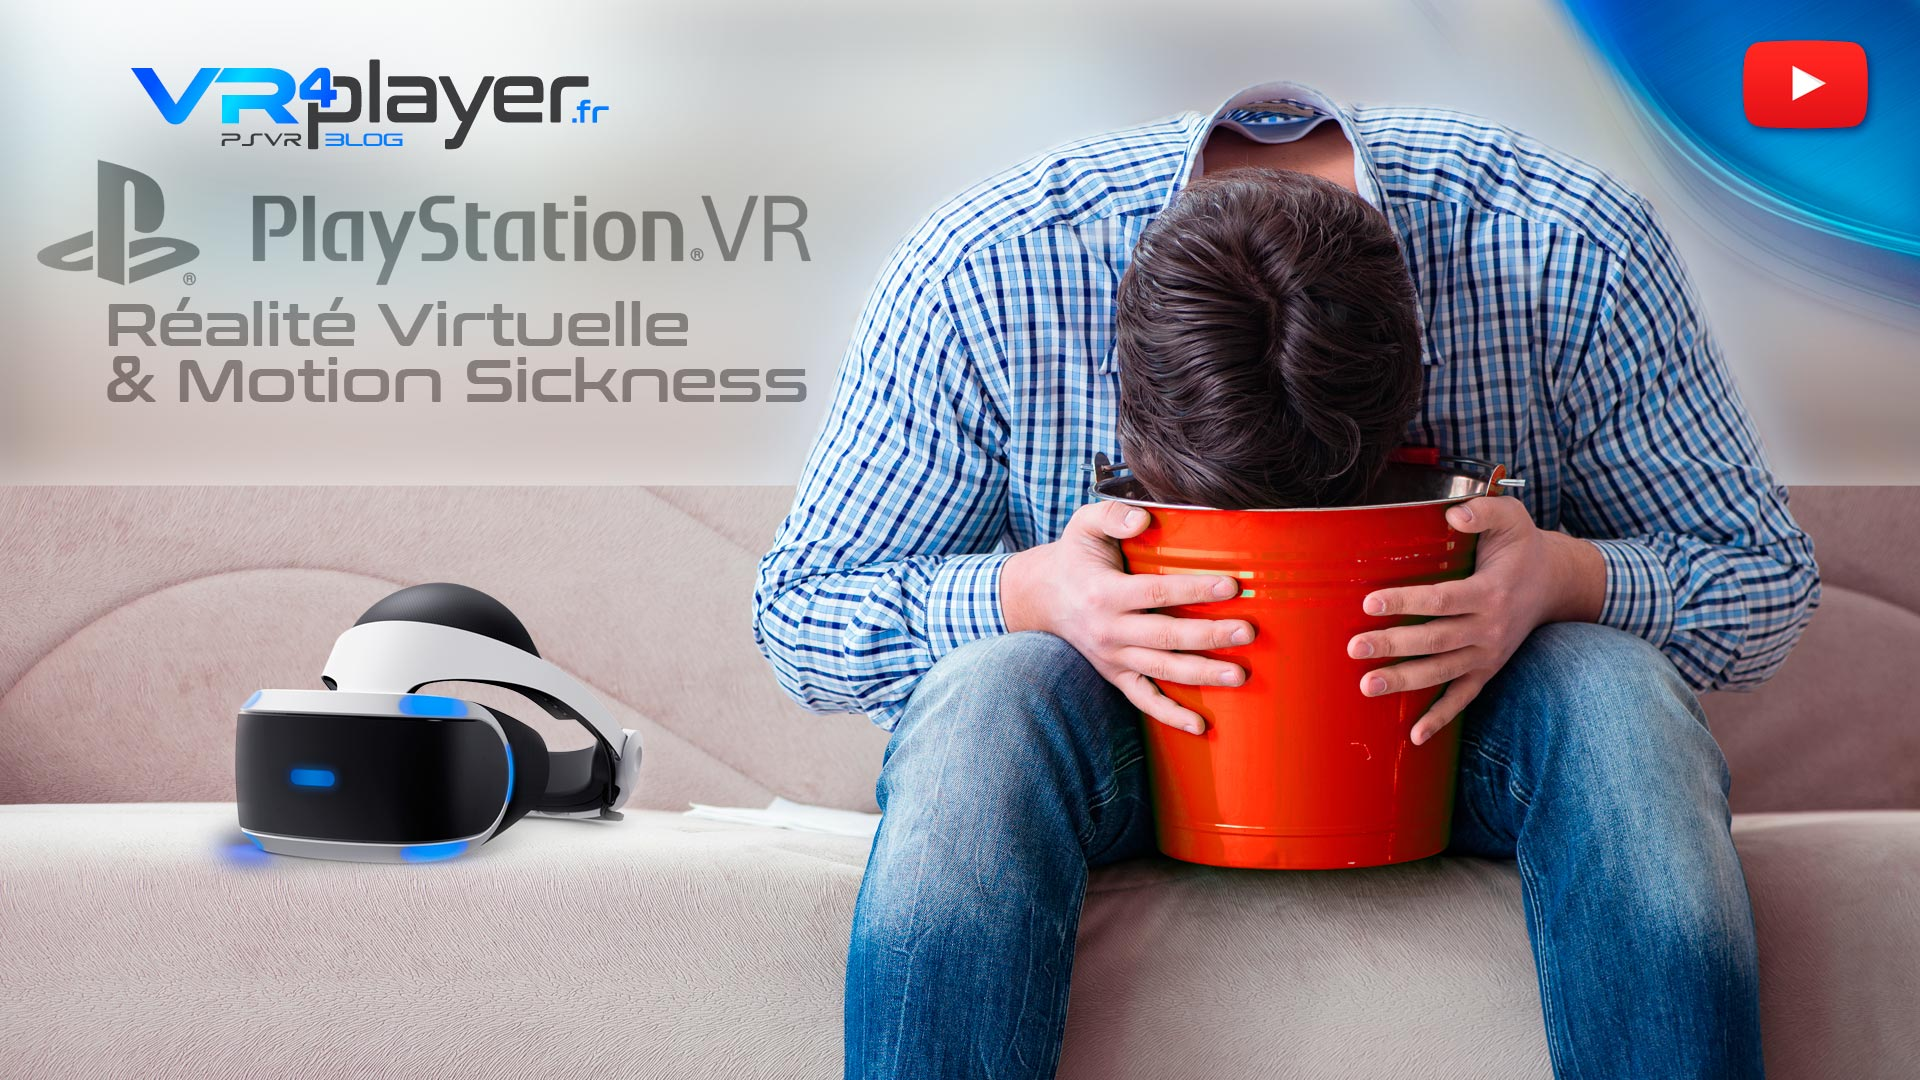 Motion Sickness VR4player.fr